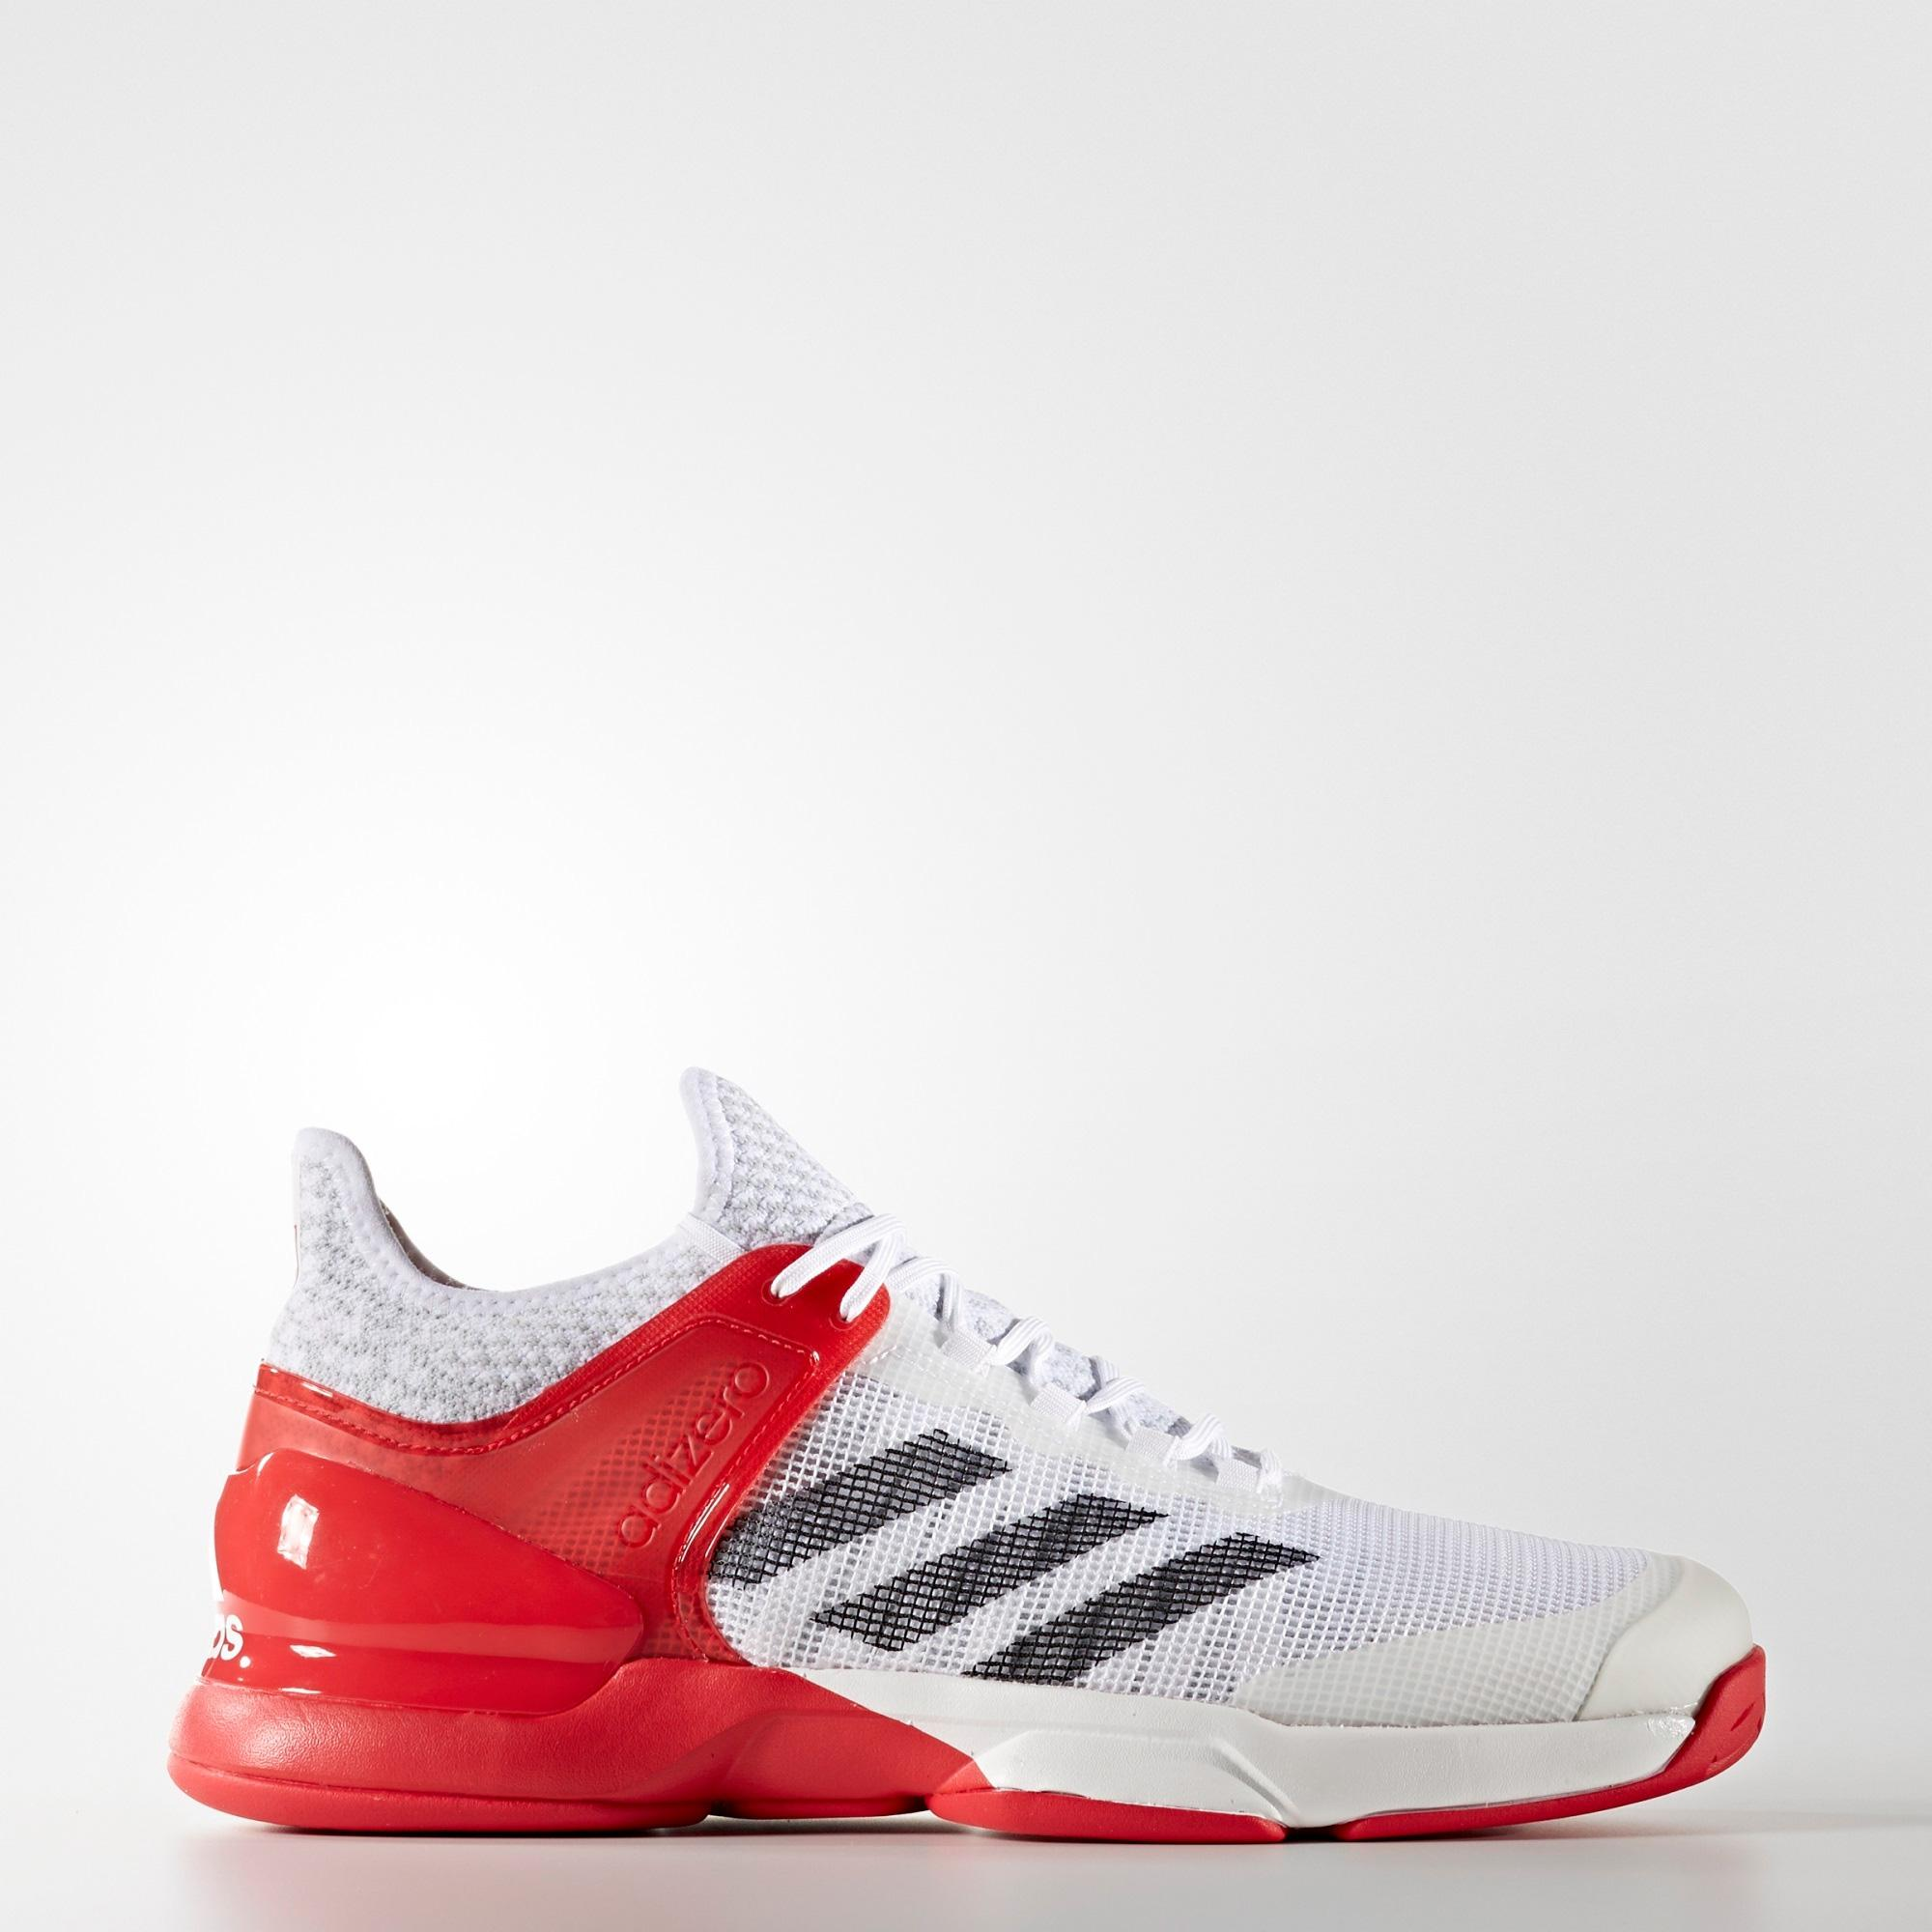 Adidas Mens Adizero Ubersonic 2.0 Tennis Shoes - White/Red